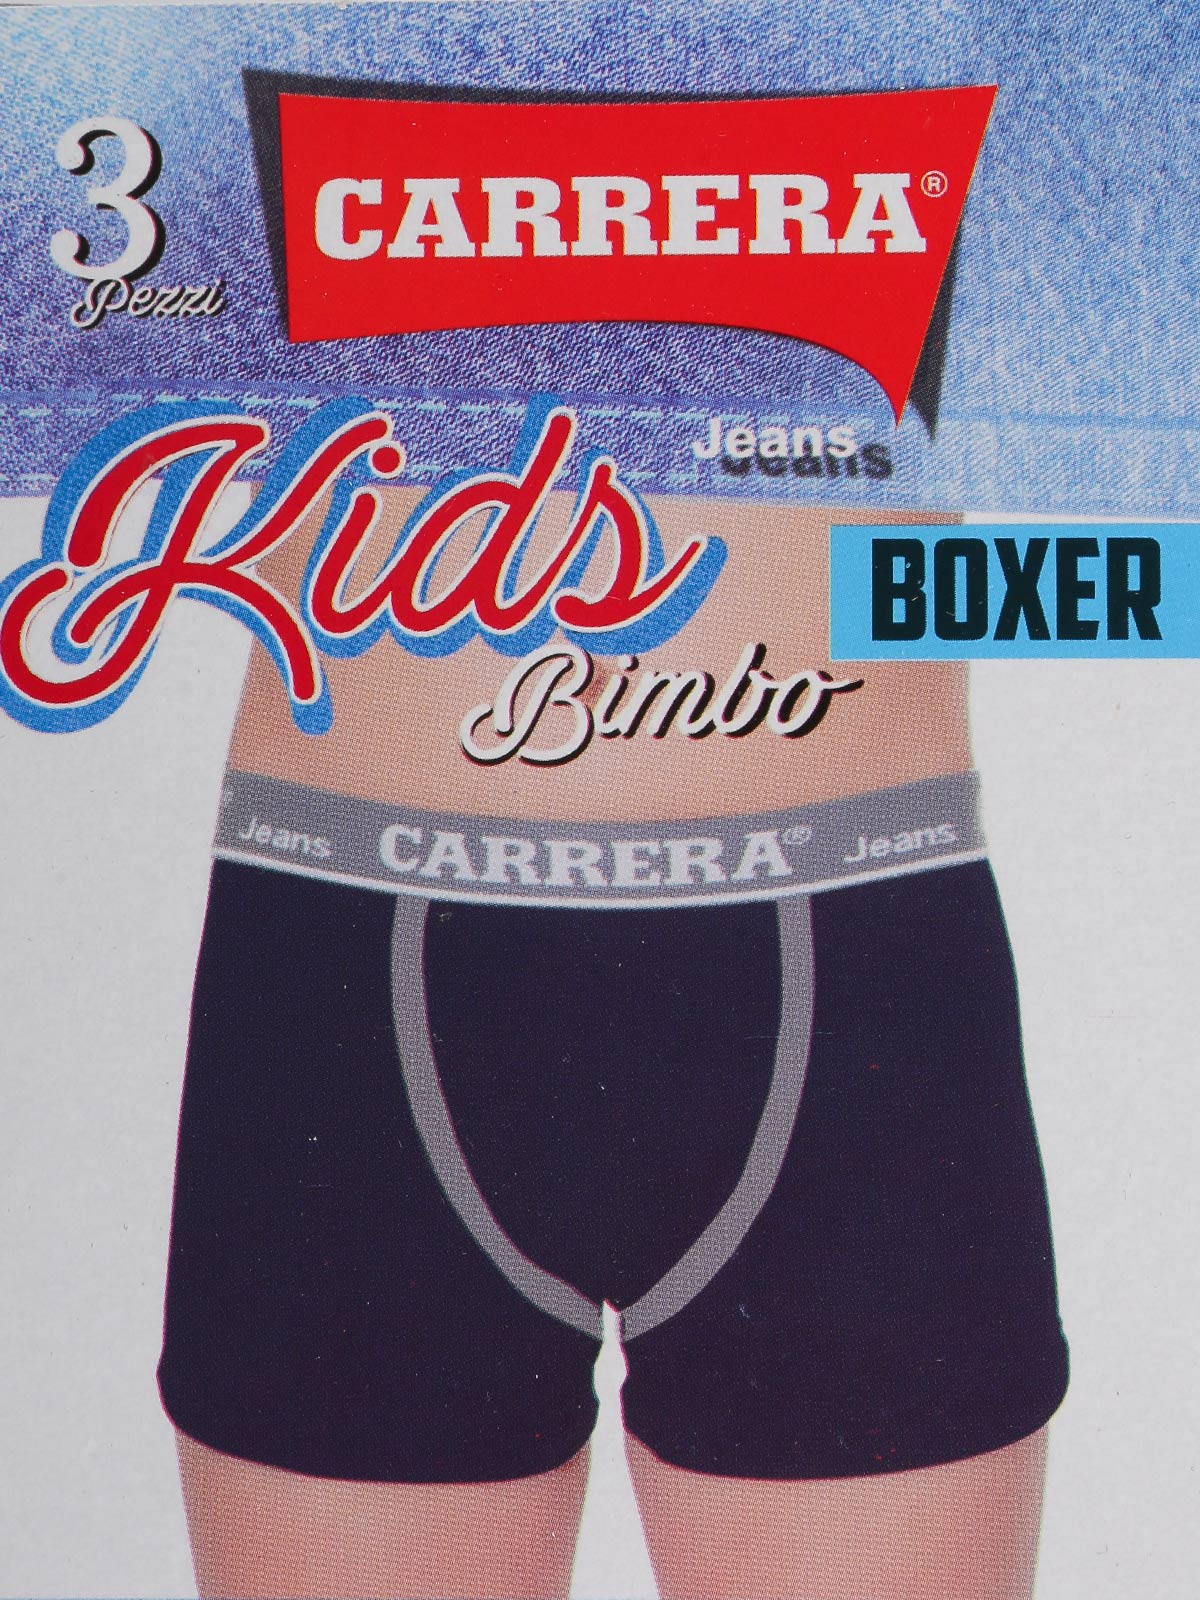 Boxer Shorts Boys Cotton-3 Pieces